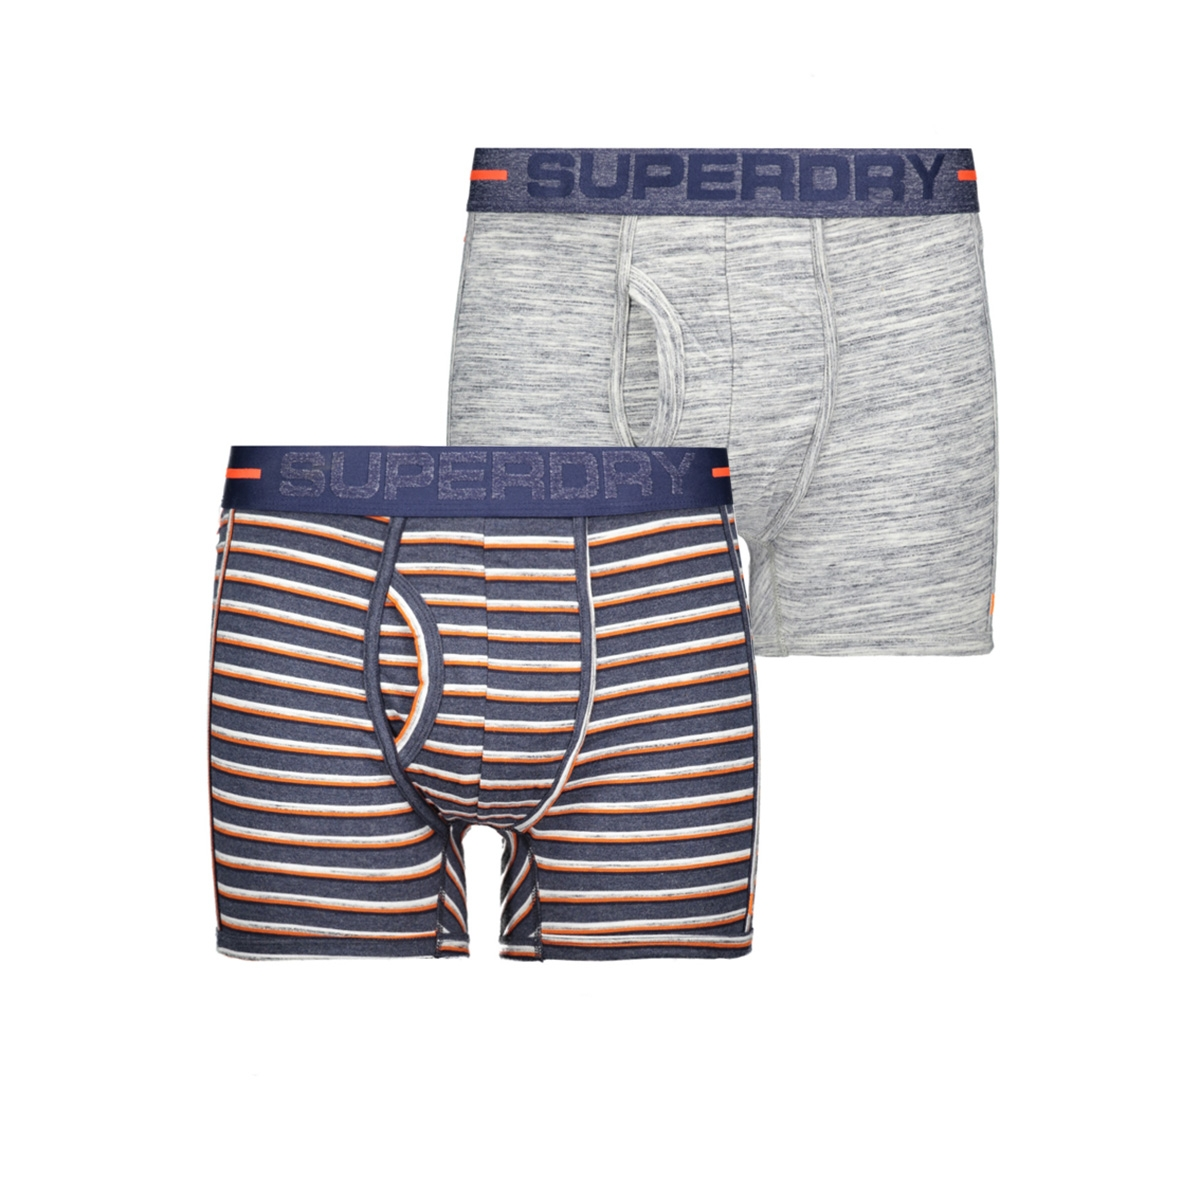 m3100015a sport boxer two pack superdry ondergoed stripe multipack